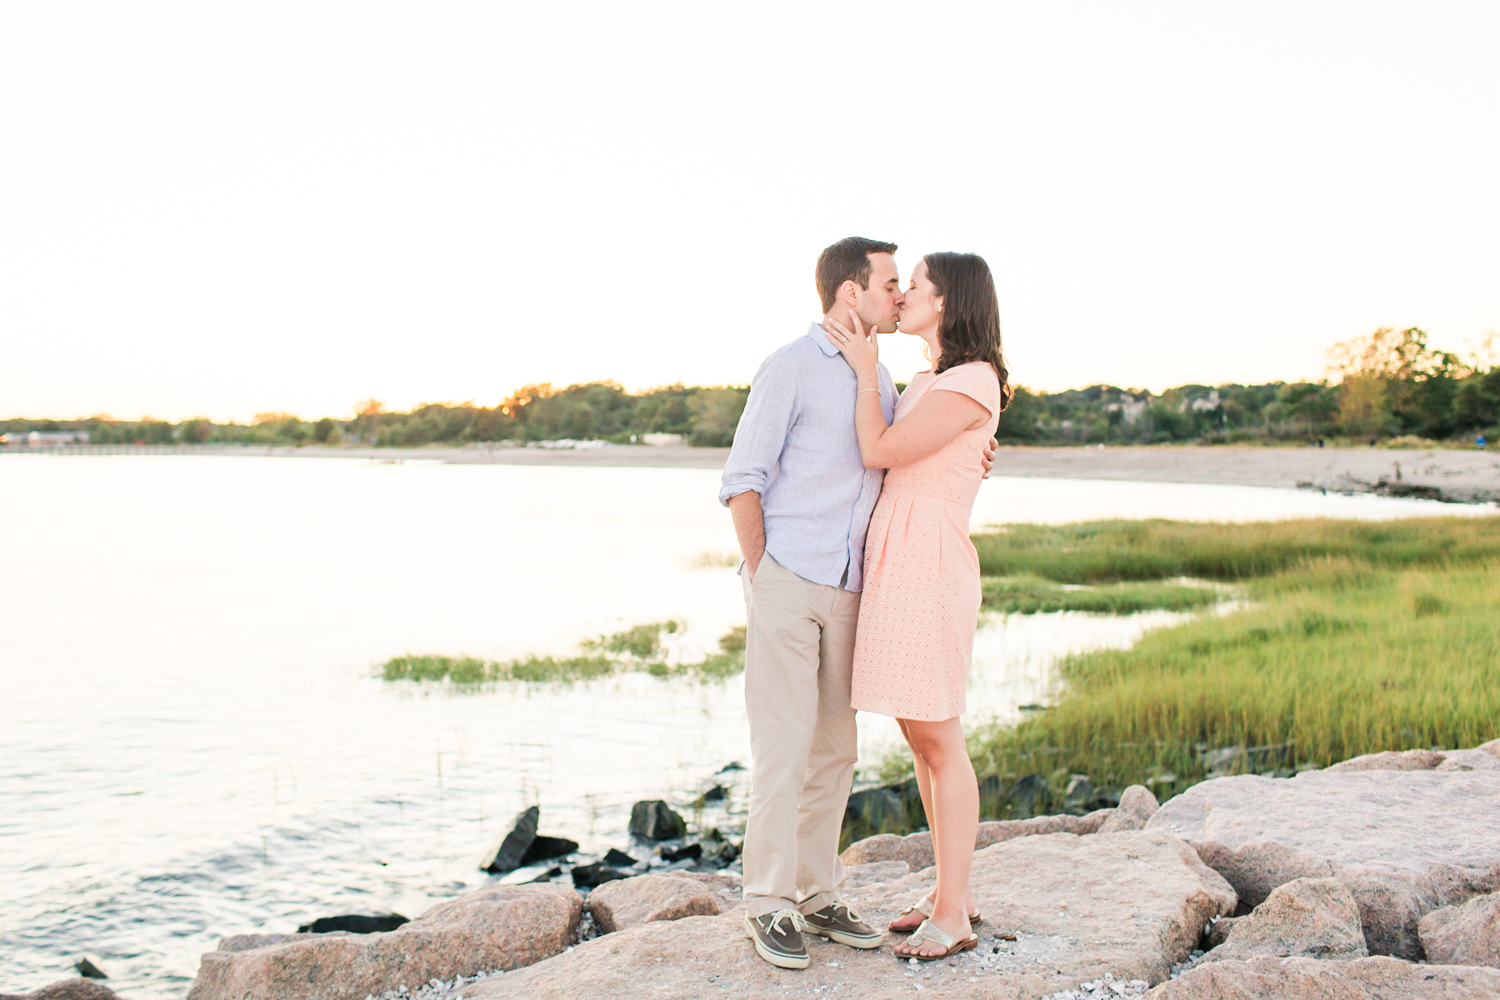 walnut-beach-engagement-session-milford-ct-top-connecticut-nyc-westchester-destination-wedding-engagement-boudoir-photographer-shaina-lee-photography-photo-15.jpg